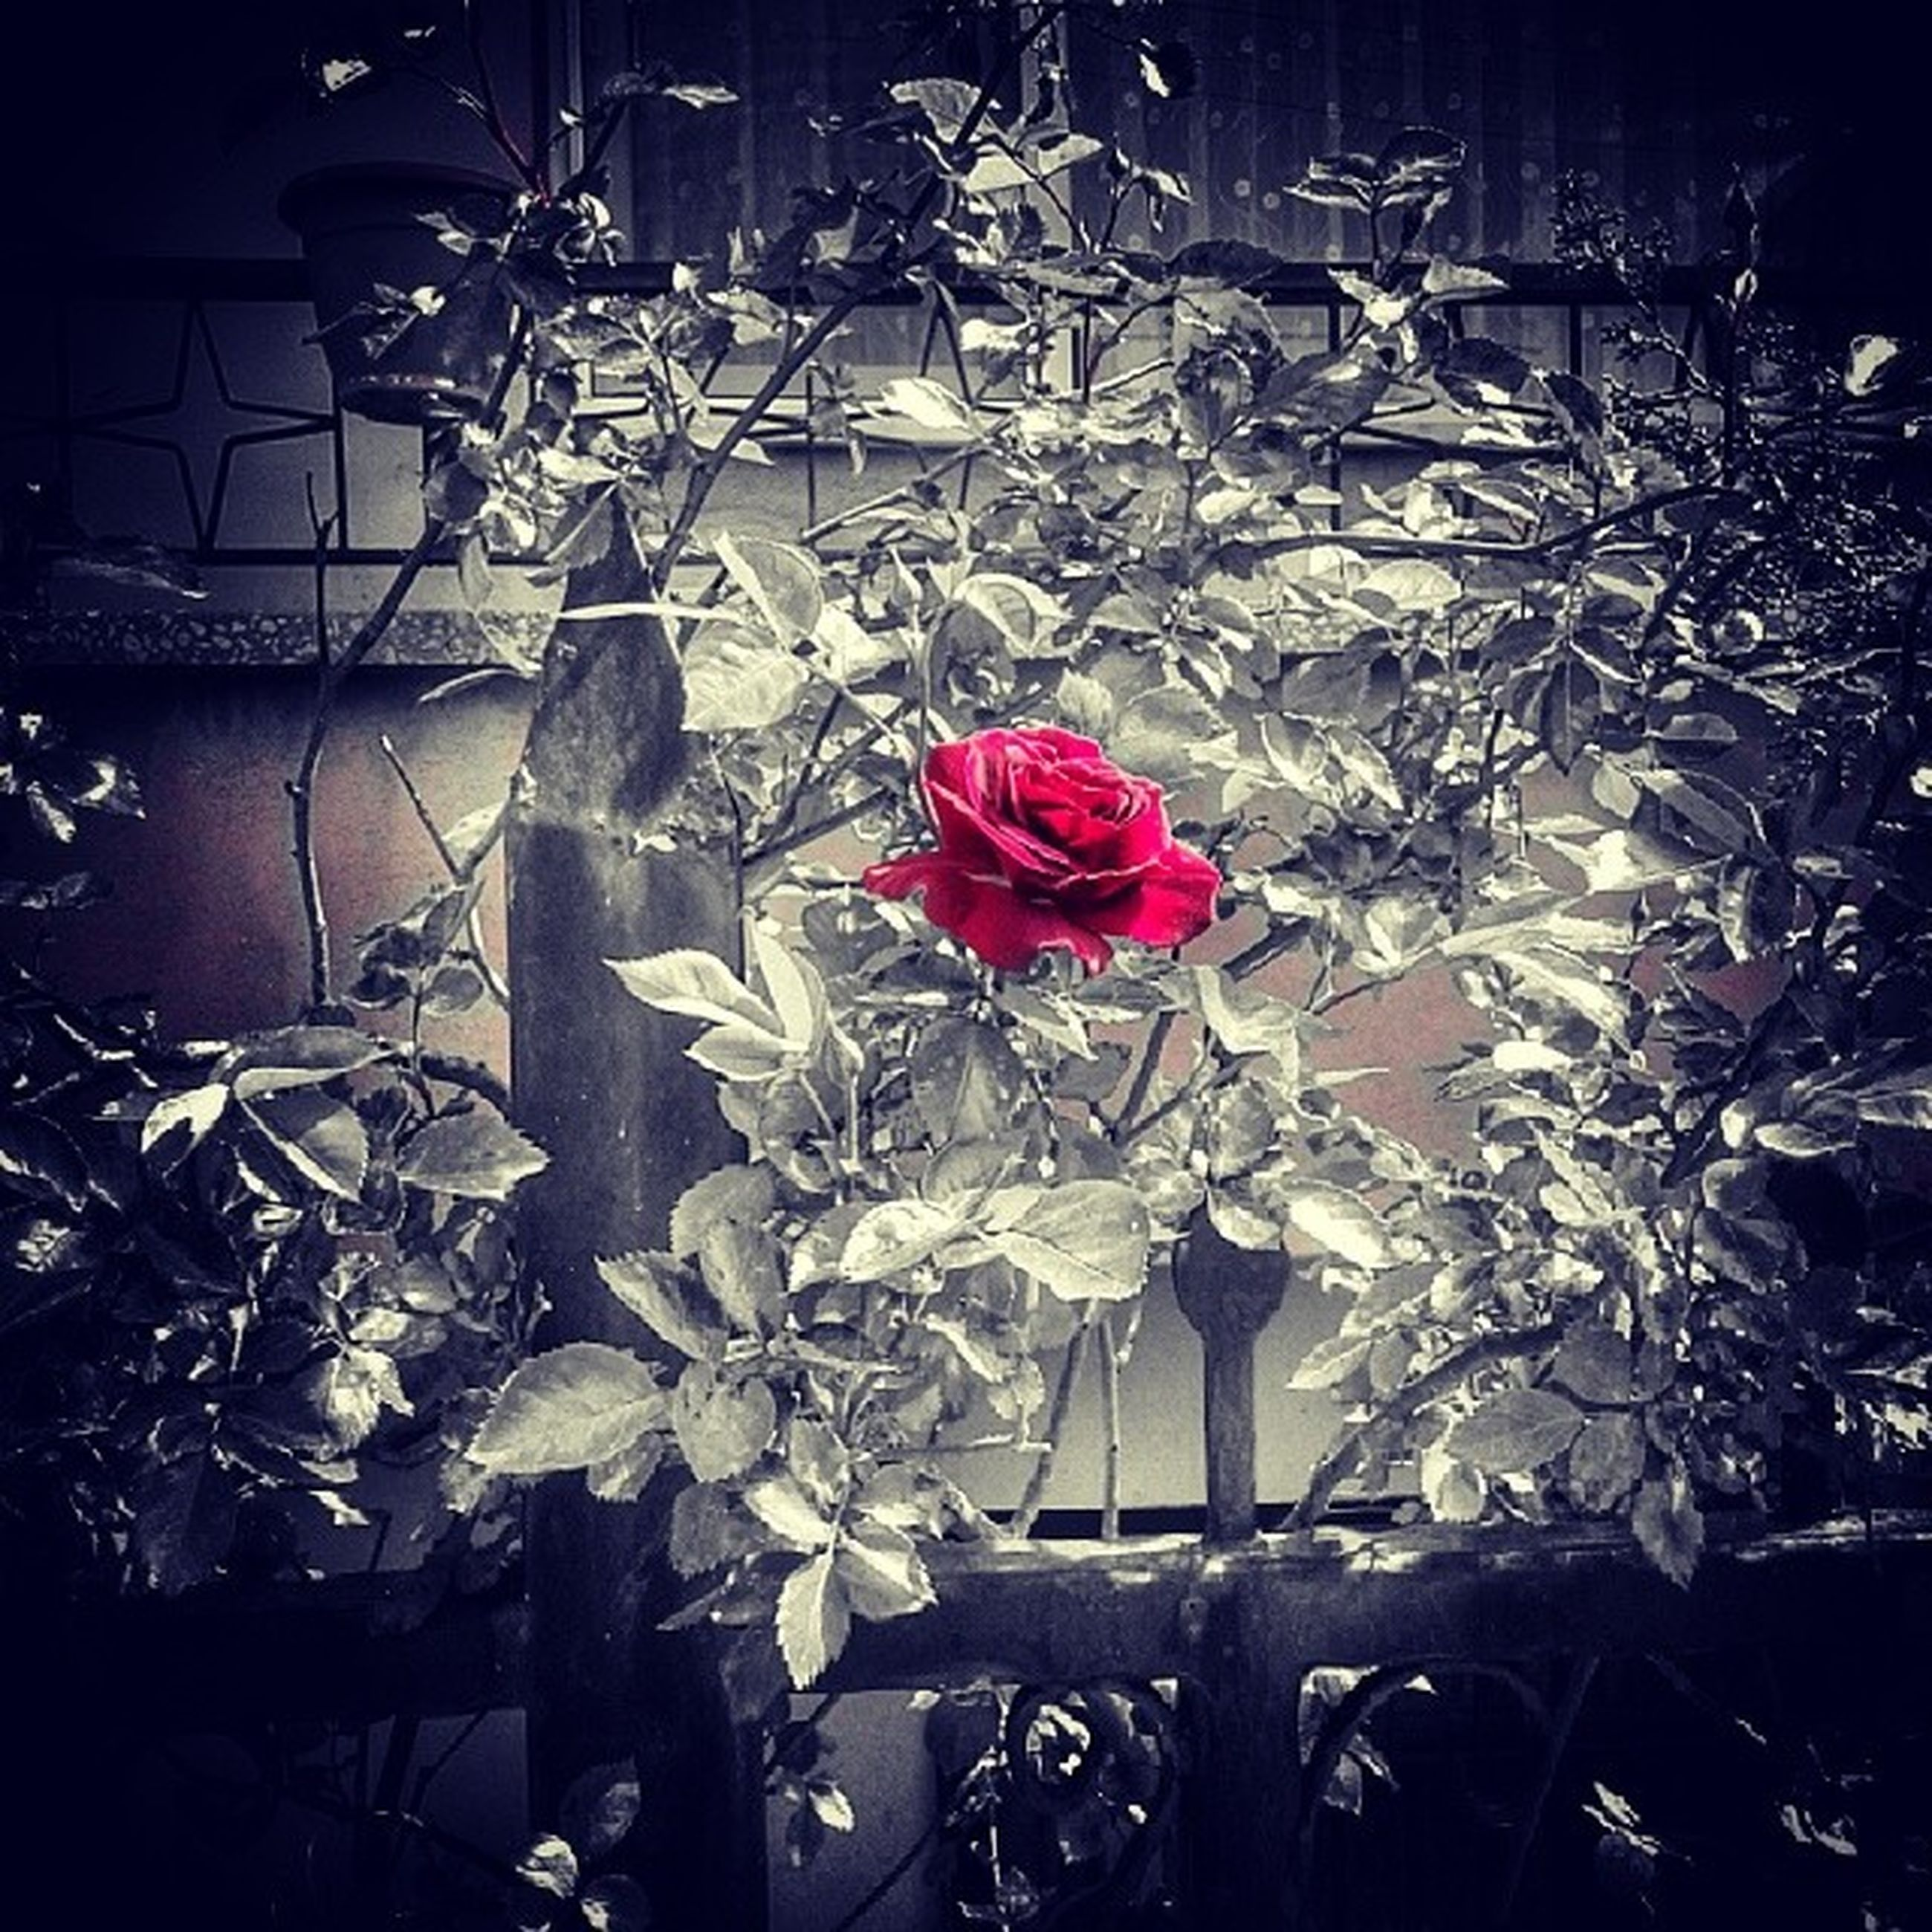 flower, petal, fragility, plant, decoration, rose - flower, flower head, close-up, leaf, indoors, nature, freshness, growth, stem, no people, hanging, beauty in nature, wall - building feature, red, blooming